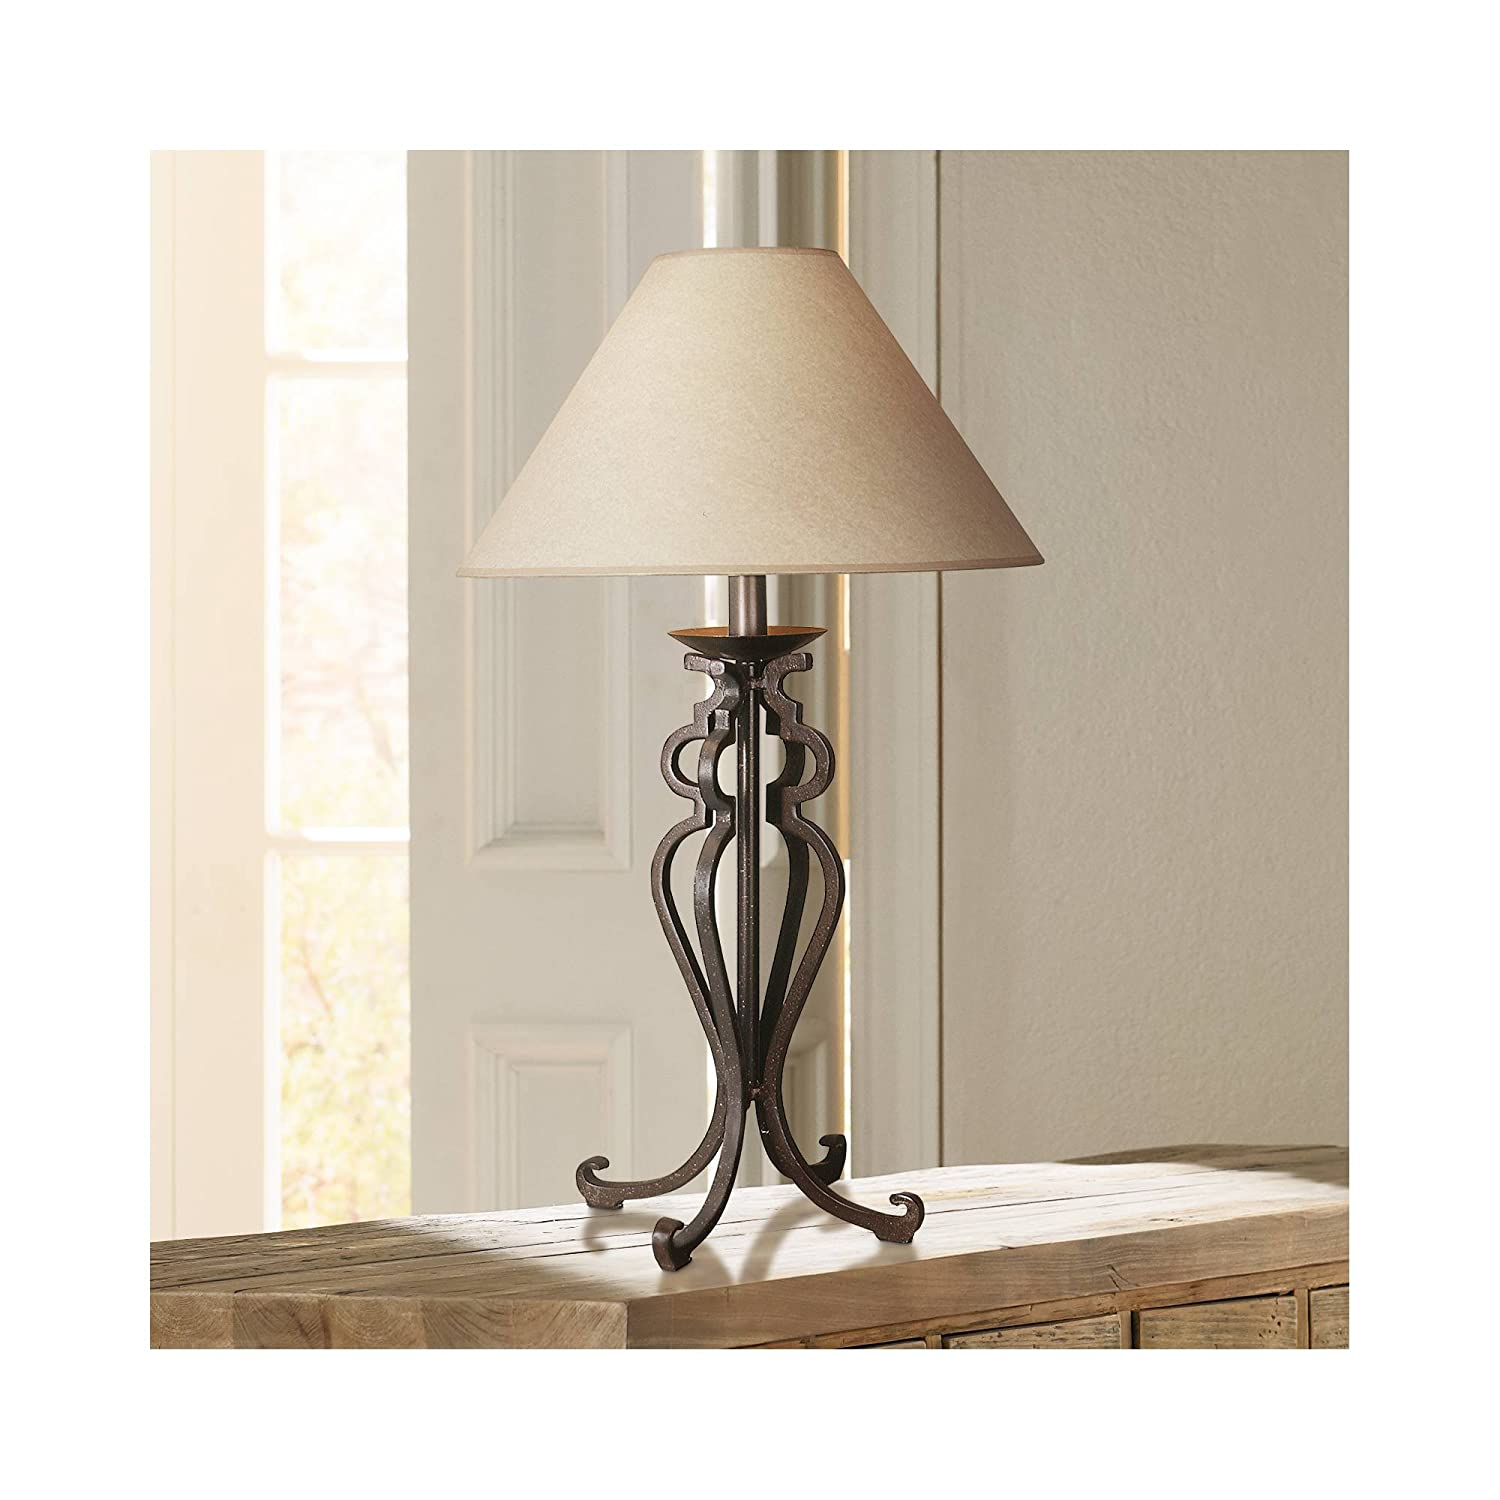 Rustic table lamp open scroll wrought iron parchment empire shade for living room family bedroom bedside franklin iron works amazon com